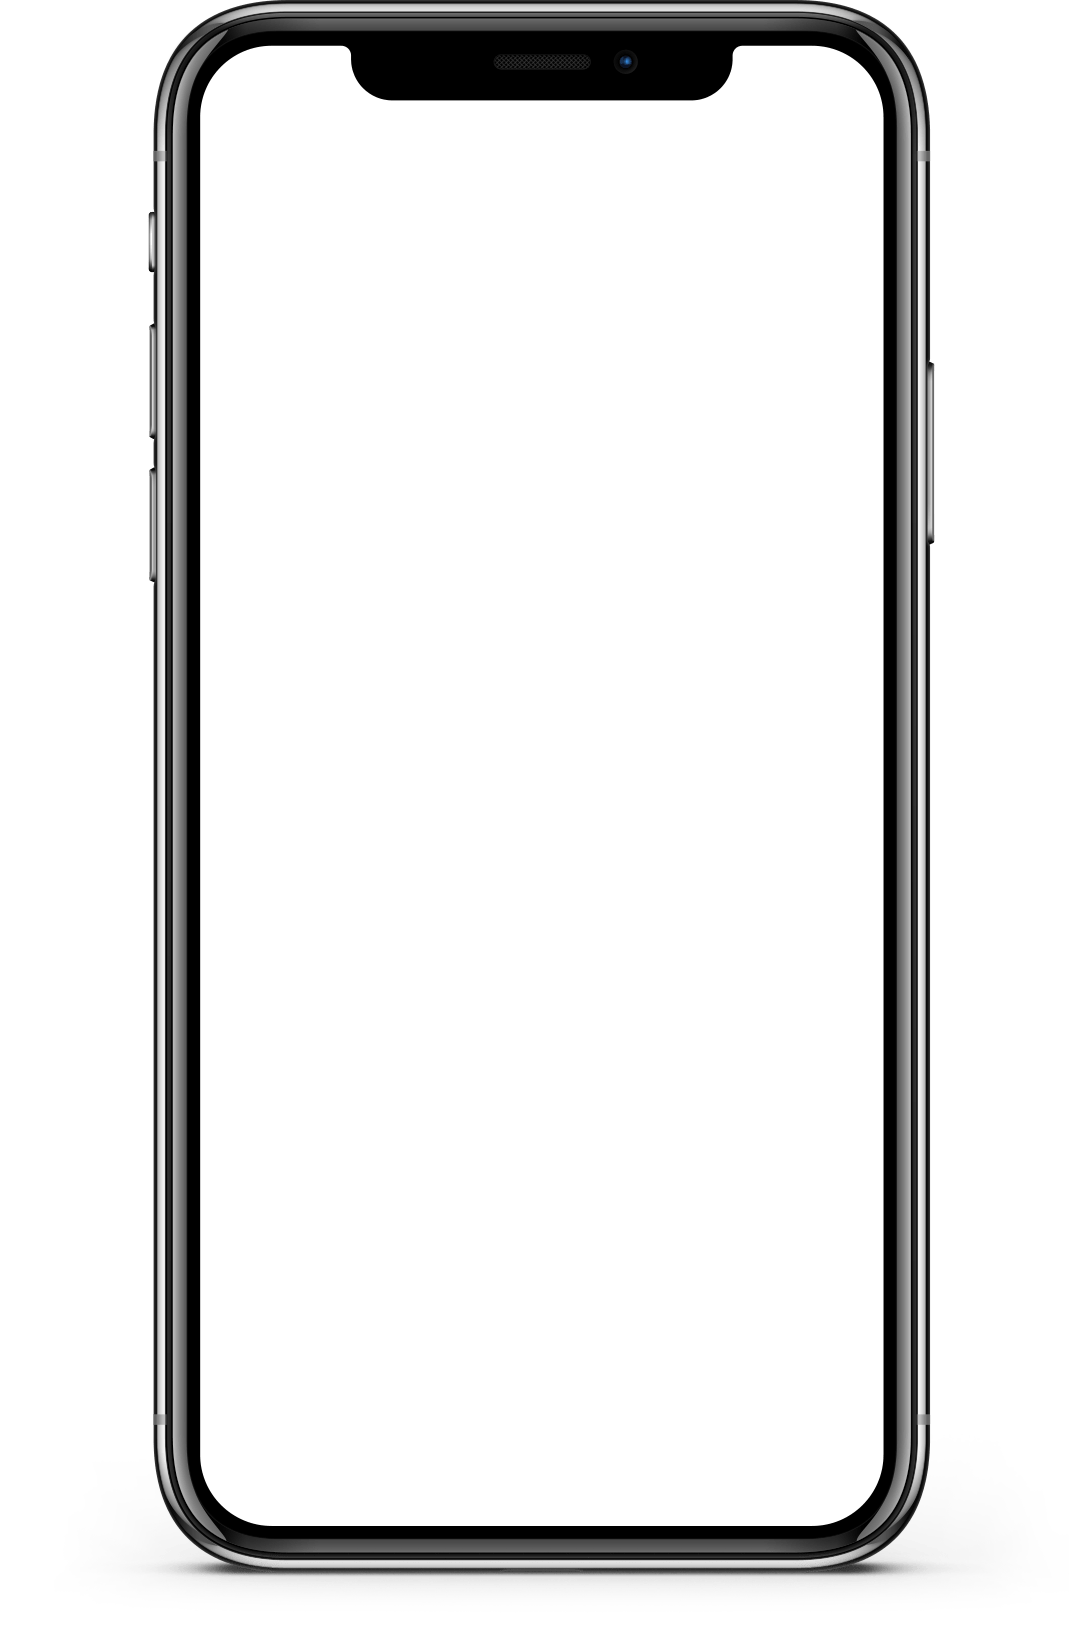 Iphone X Screen Mockup transparent PNG.